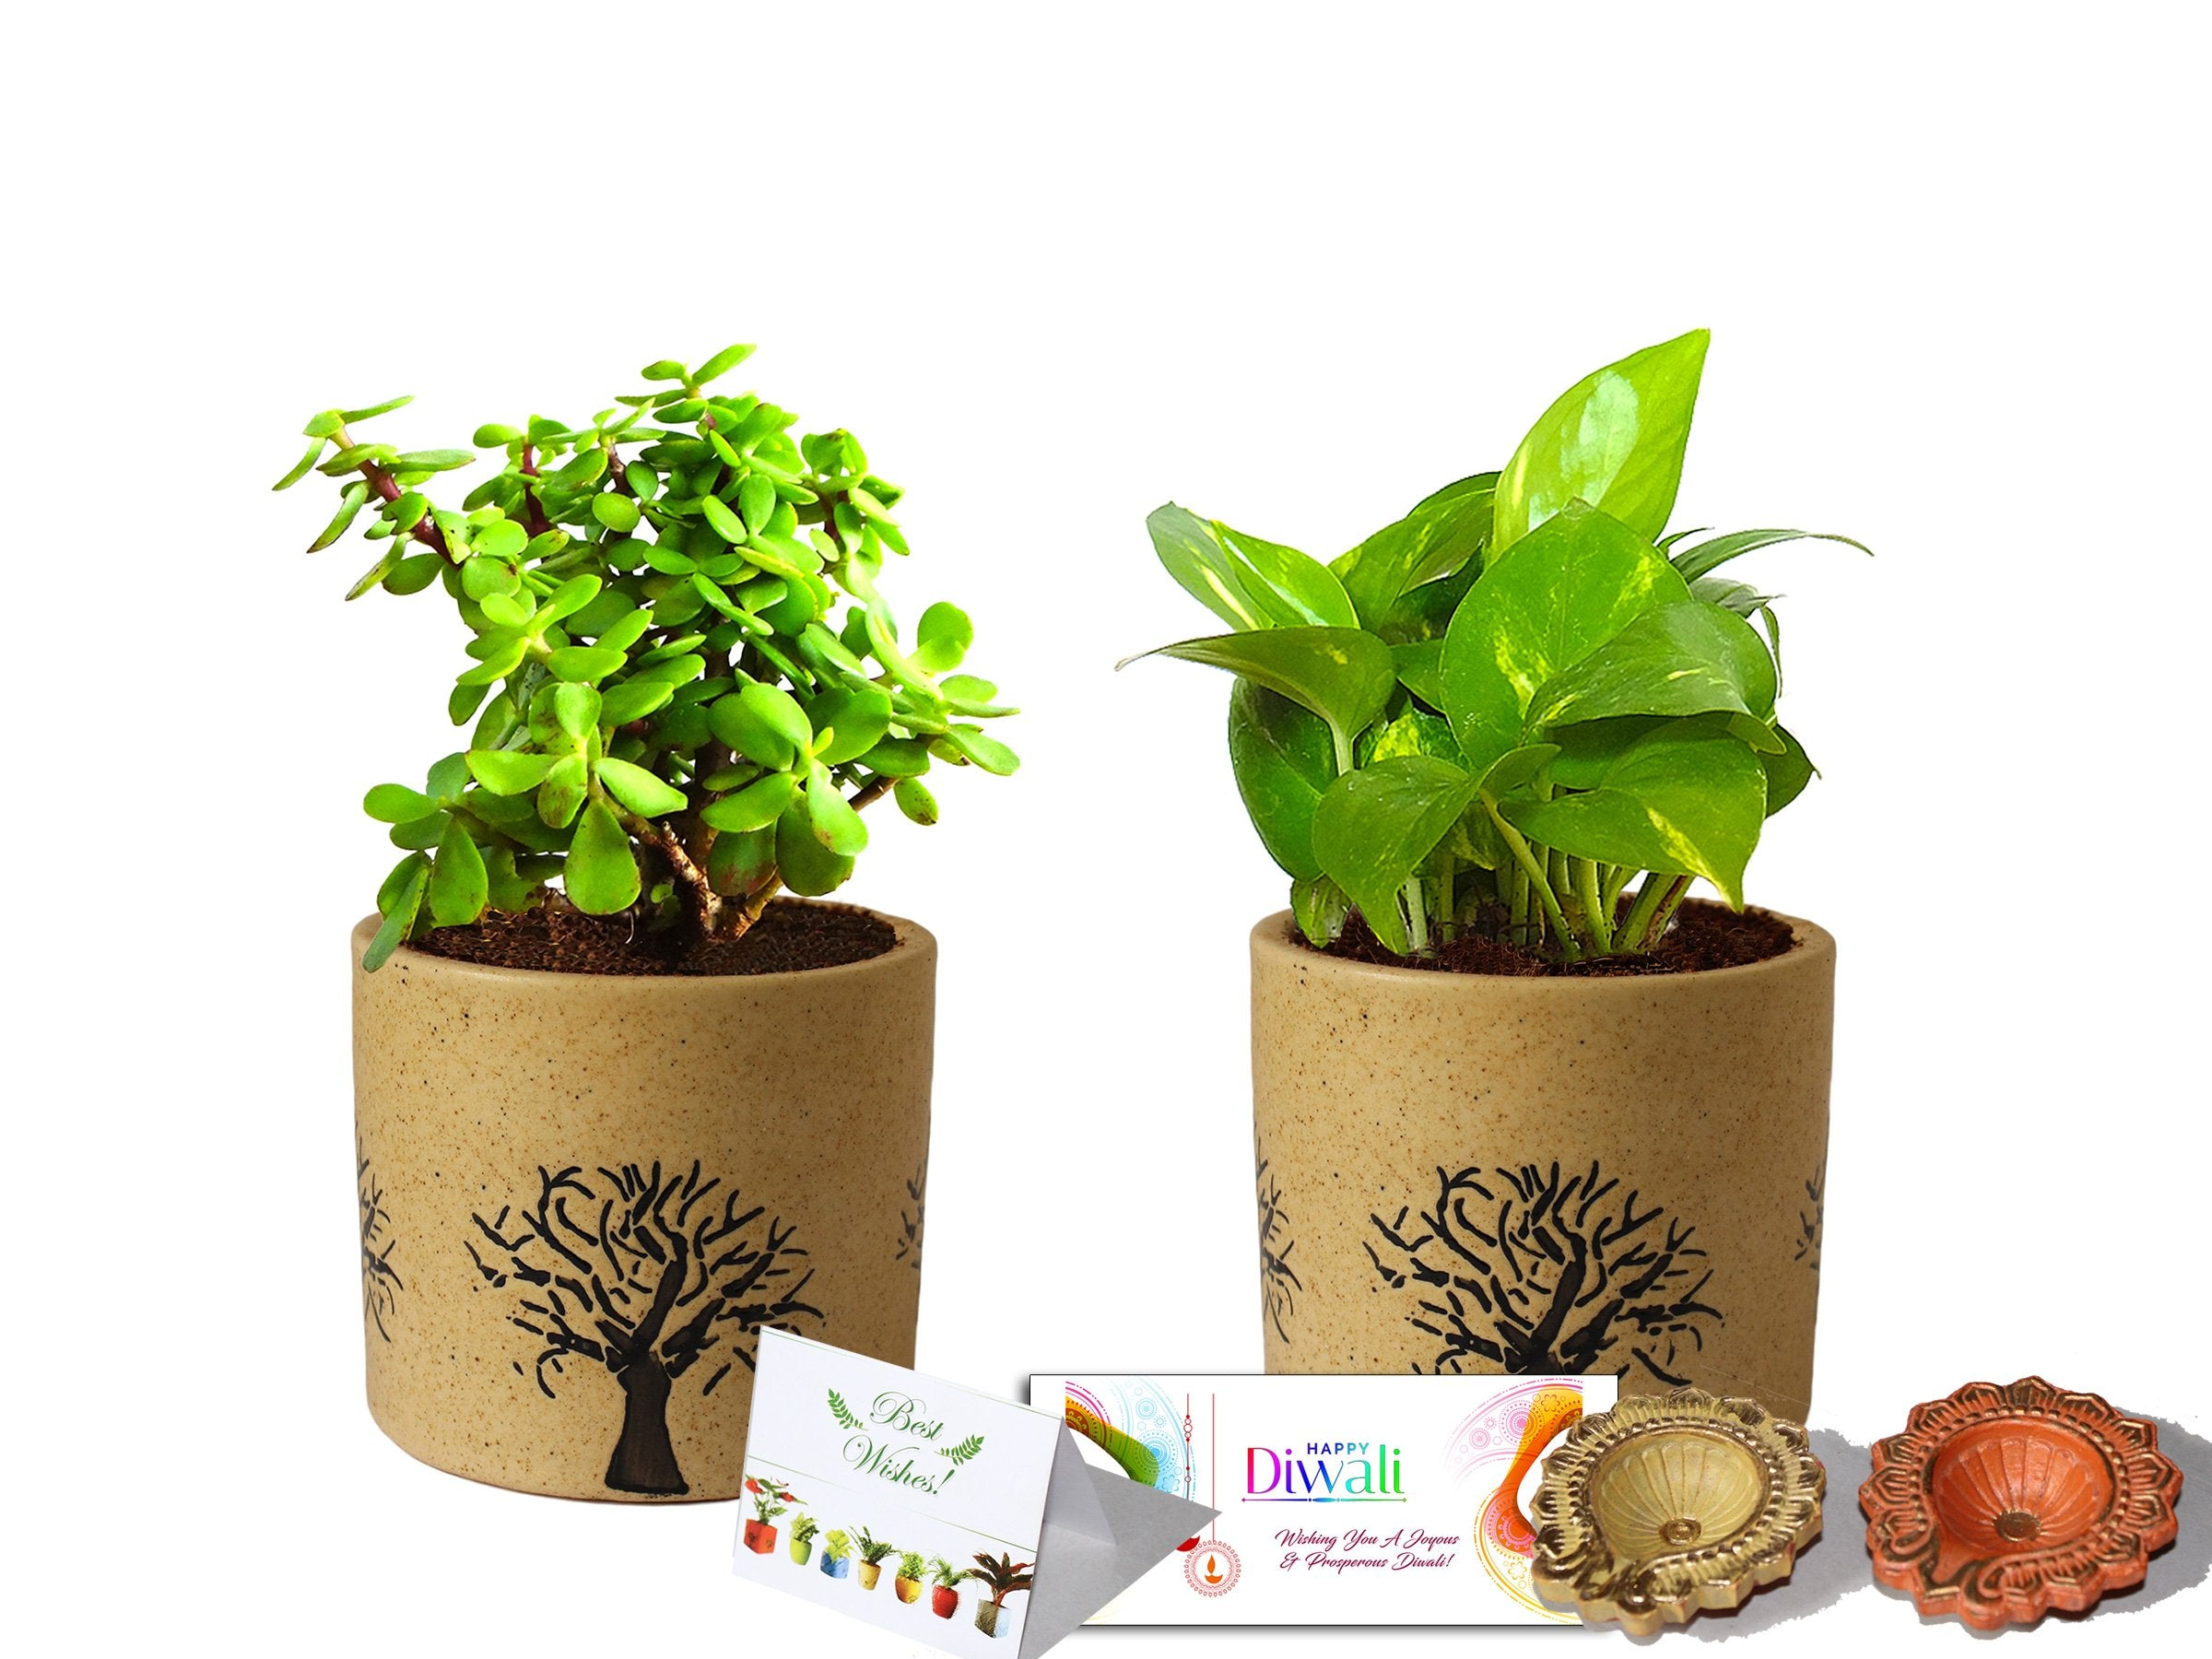 Rolling Nature Diwali Gift Combo of Good Luck Air Purifying Live Money Plant and Jade in Brown Barrel Ceramic Aroez Pot